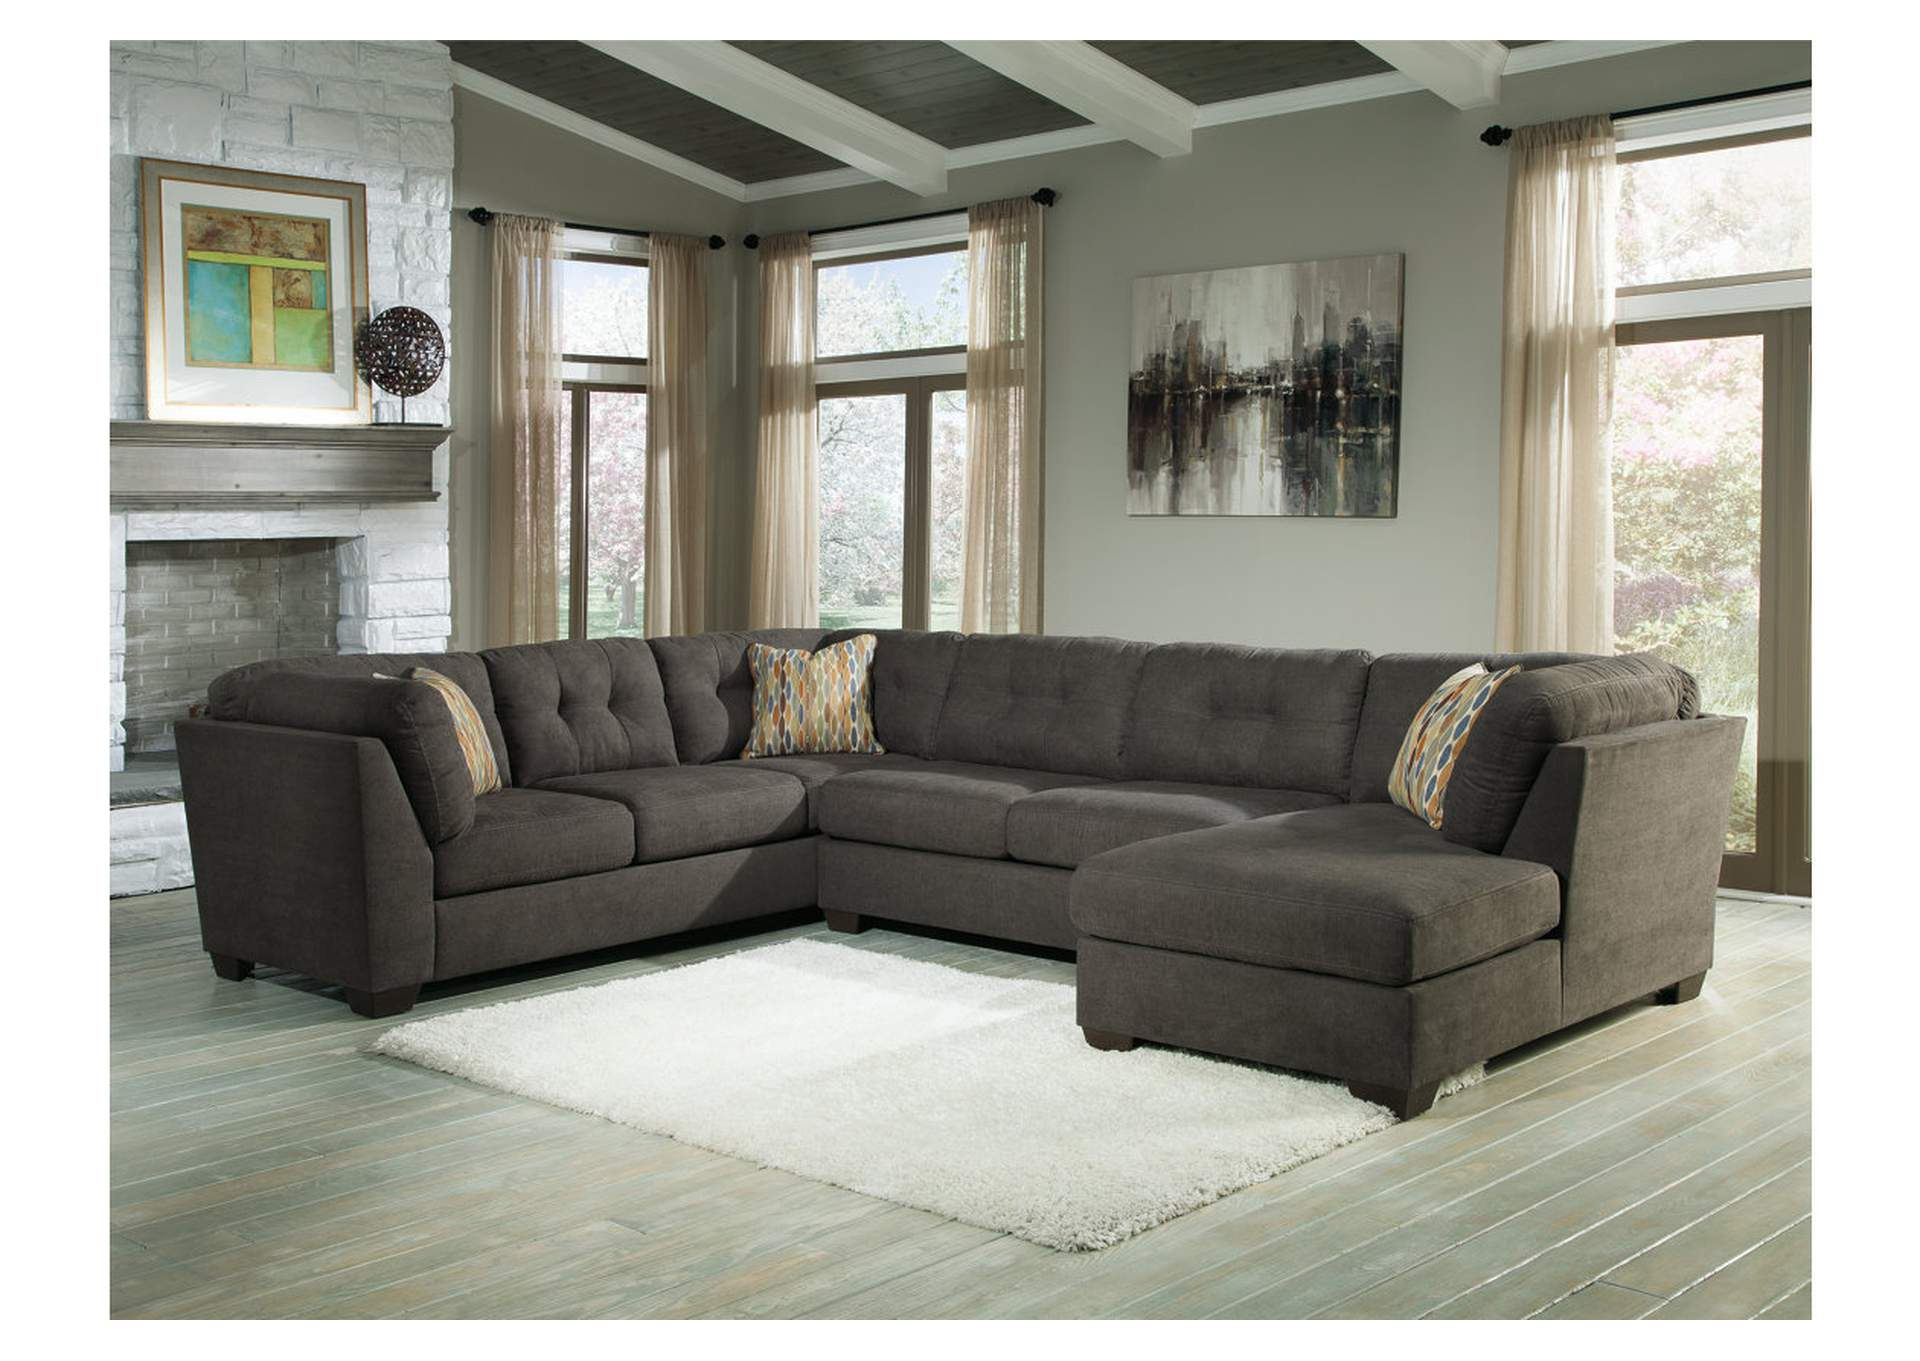 couch potatoes furniture stores austin texas delta city steel right arm facing corner chaise sectional